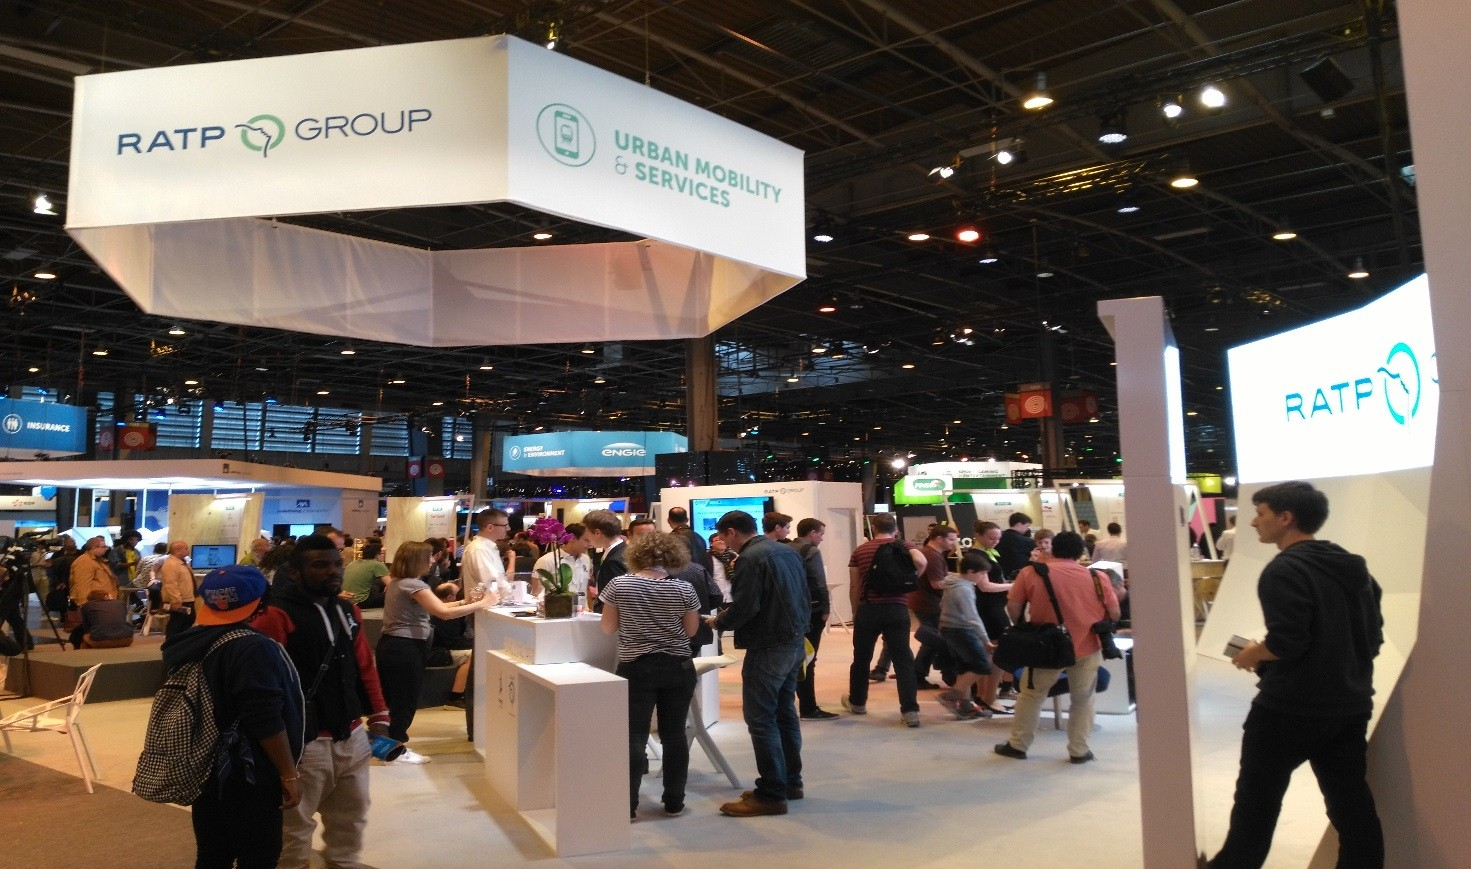 RATP Group booth at VIVA